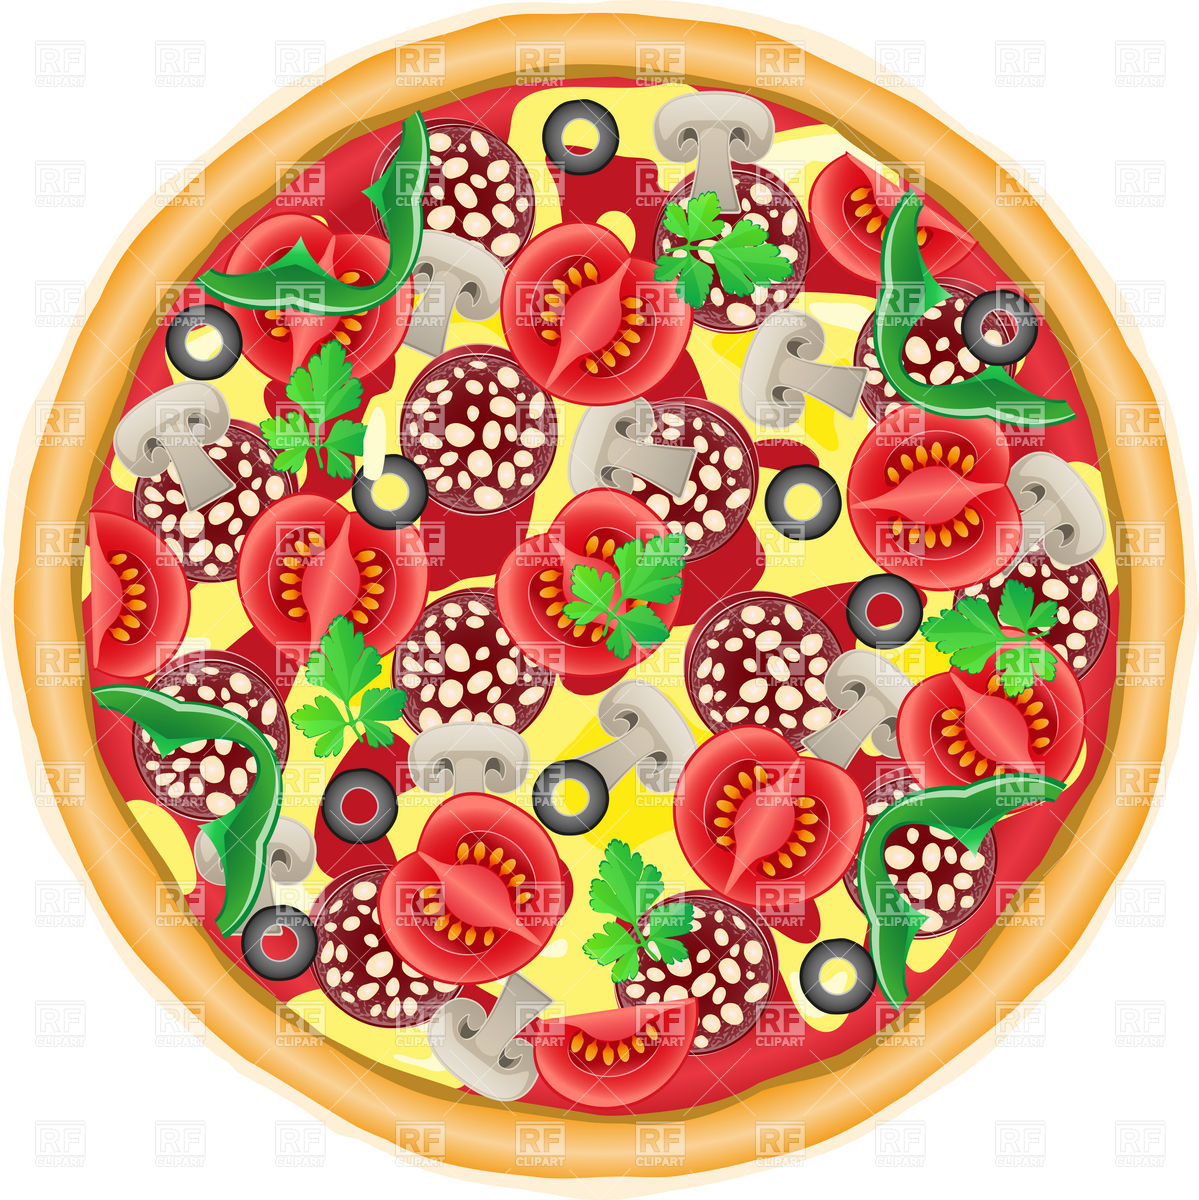 Whole Pie Pizza Top View 19670 Download Royalty Free Vector Clipart